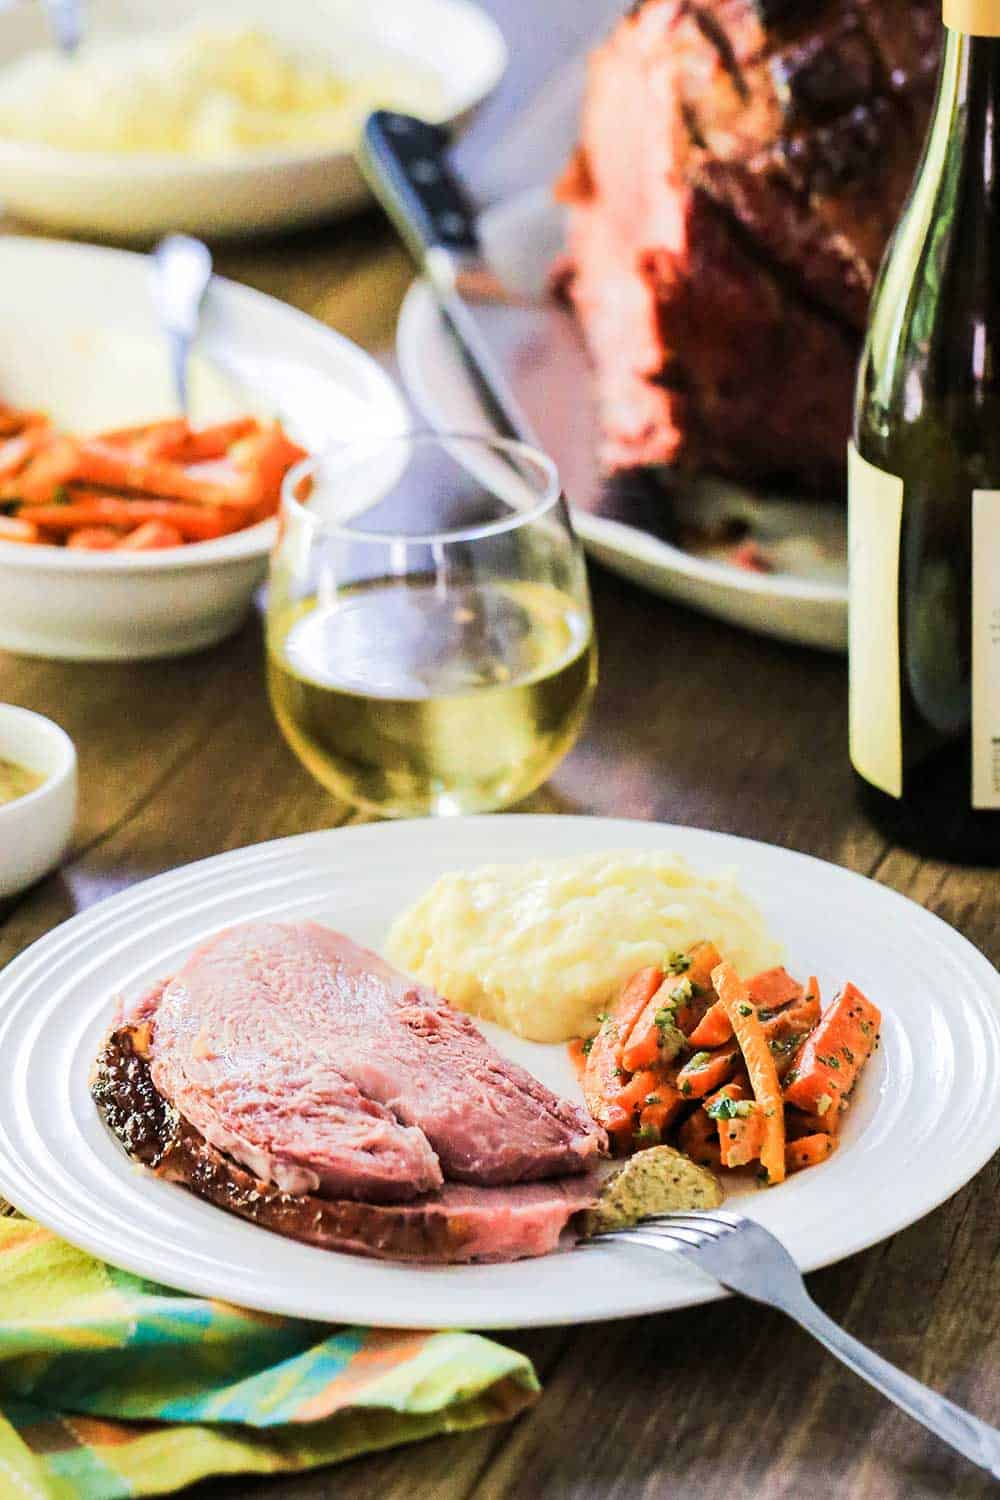 A white dinner plate with sliced ham, glazed carrots and mashed potatoes on it, next to a glass of white wine.